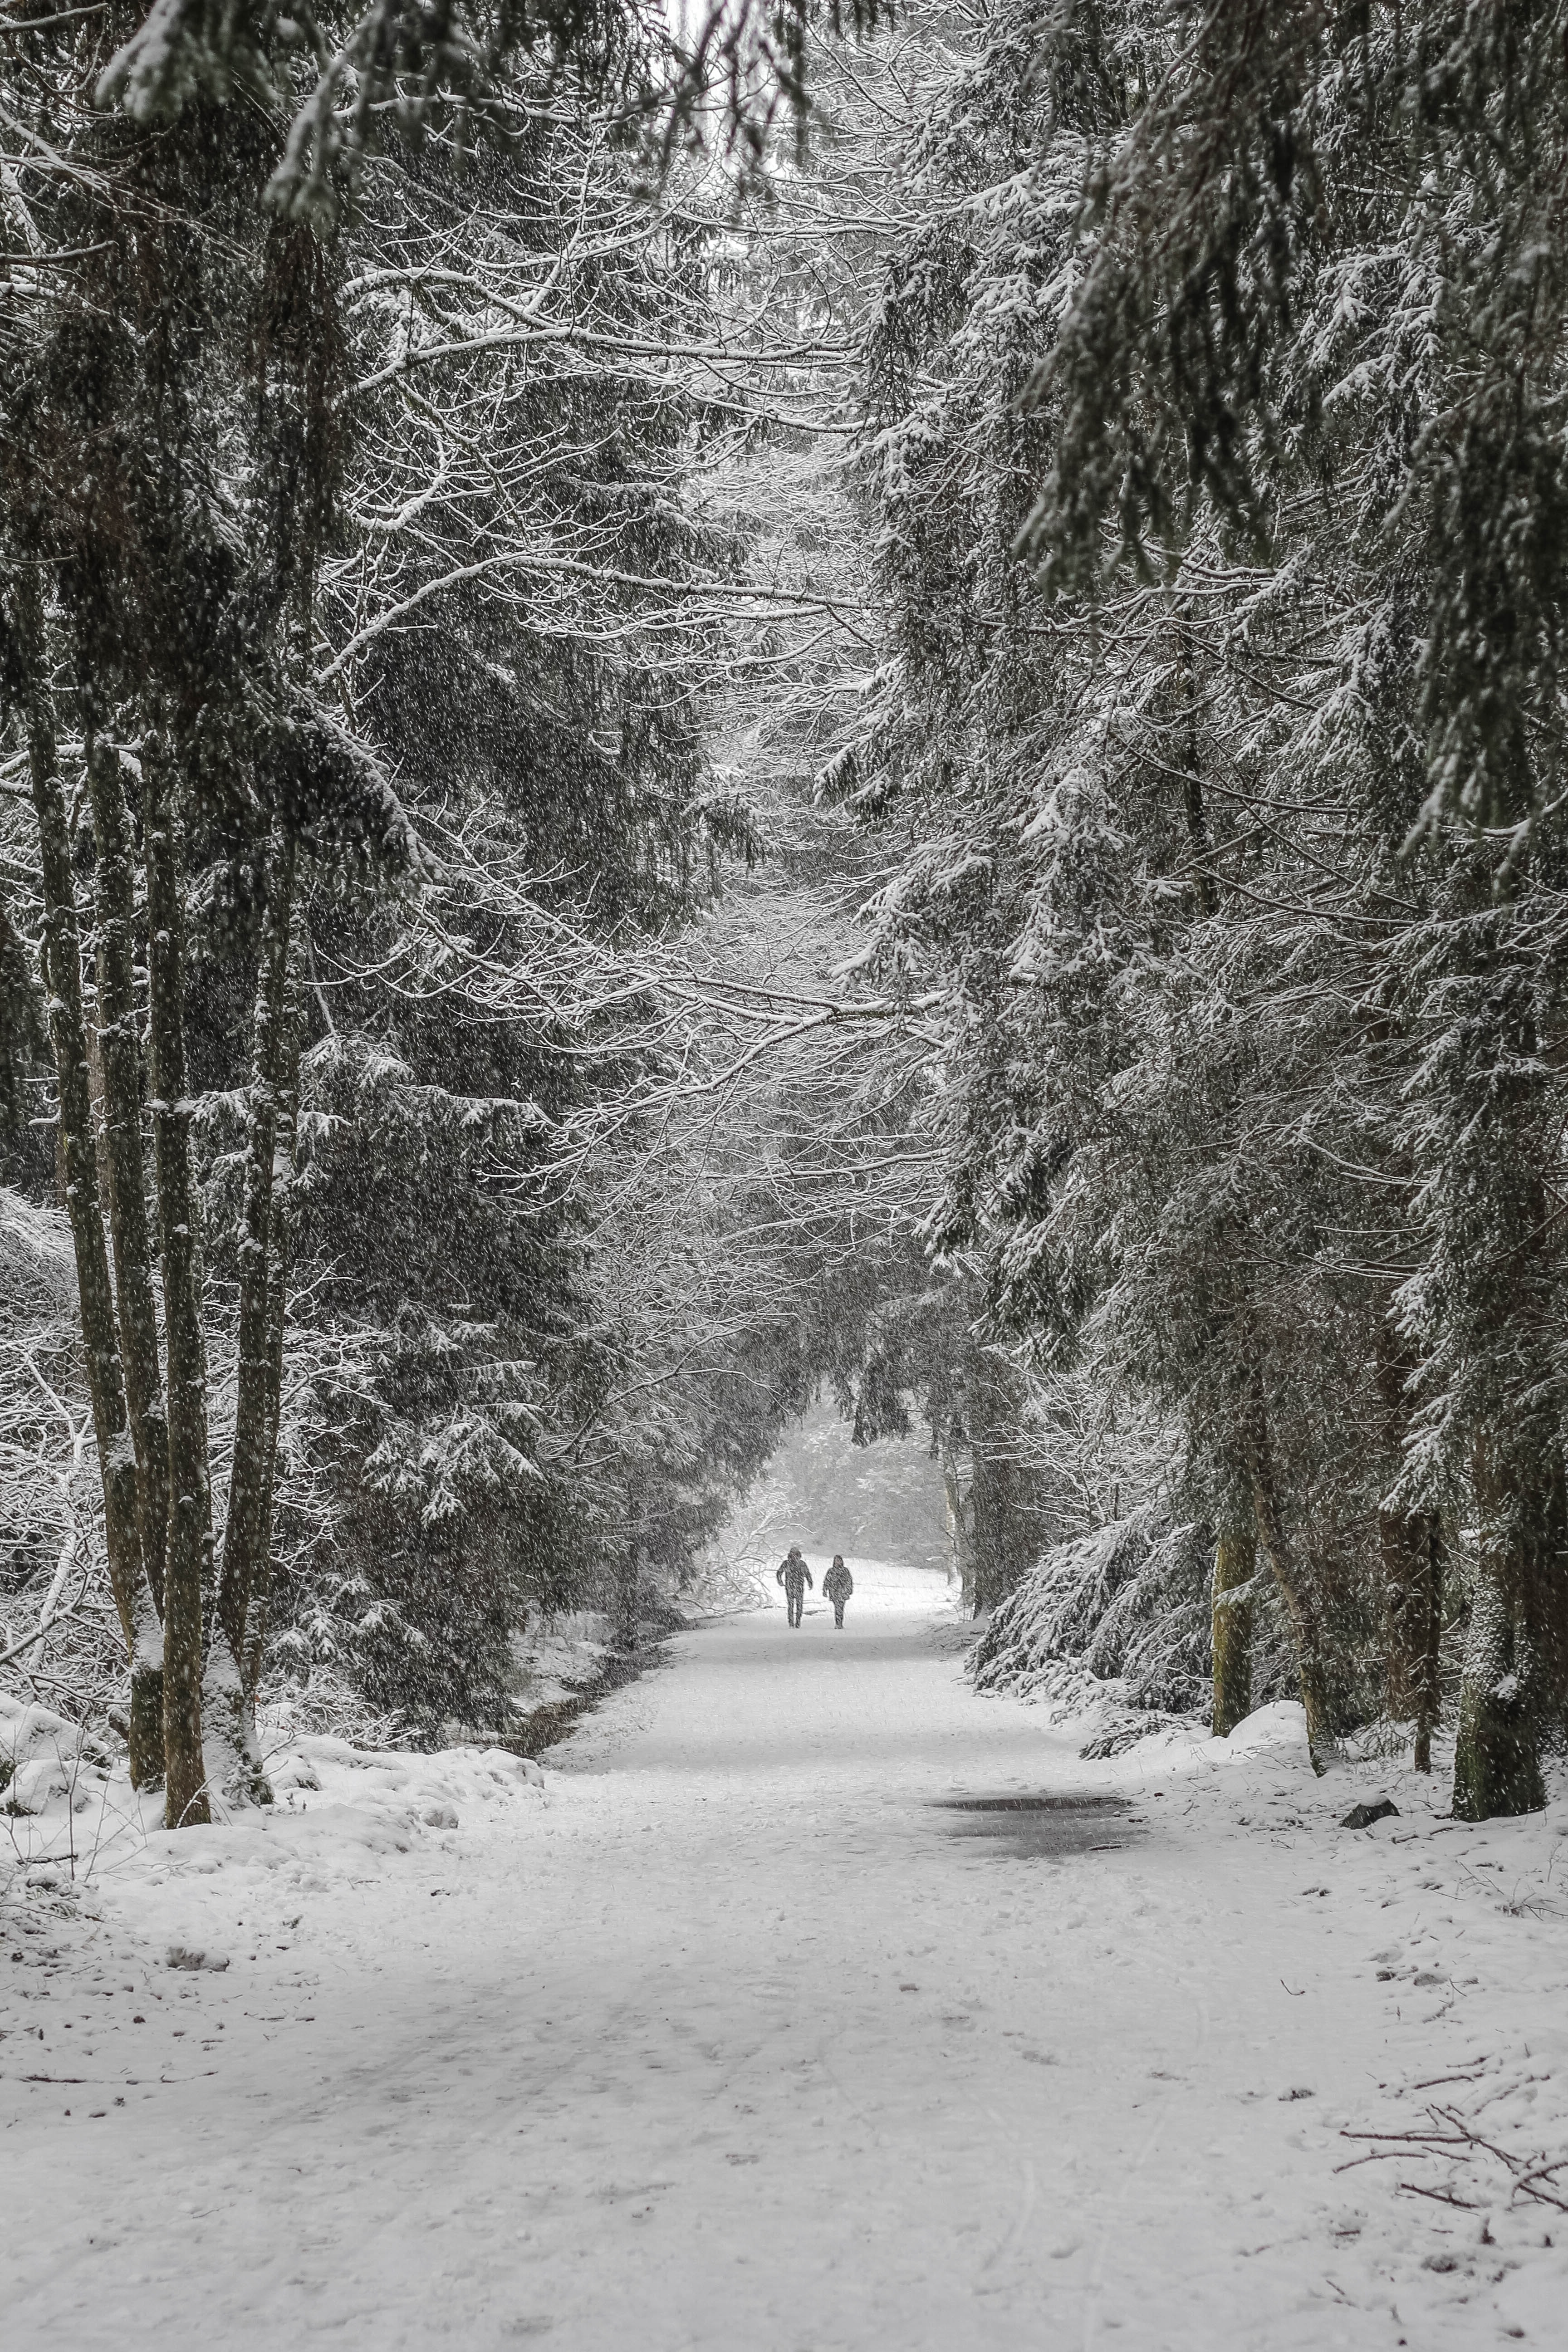 two person walking on snowfield surrounded by trees